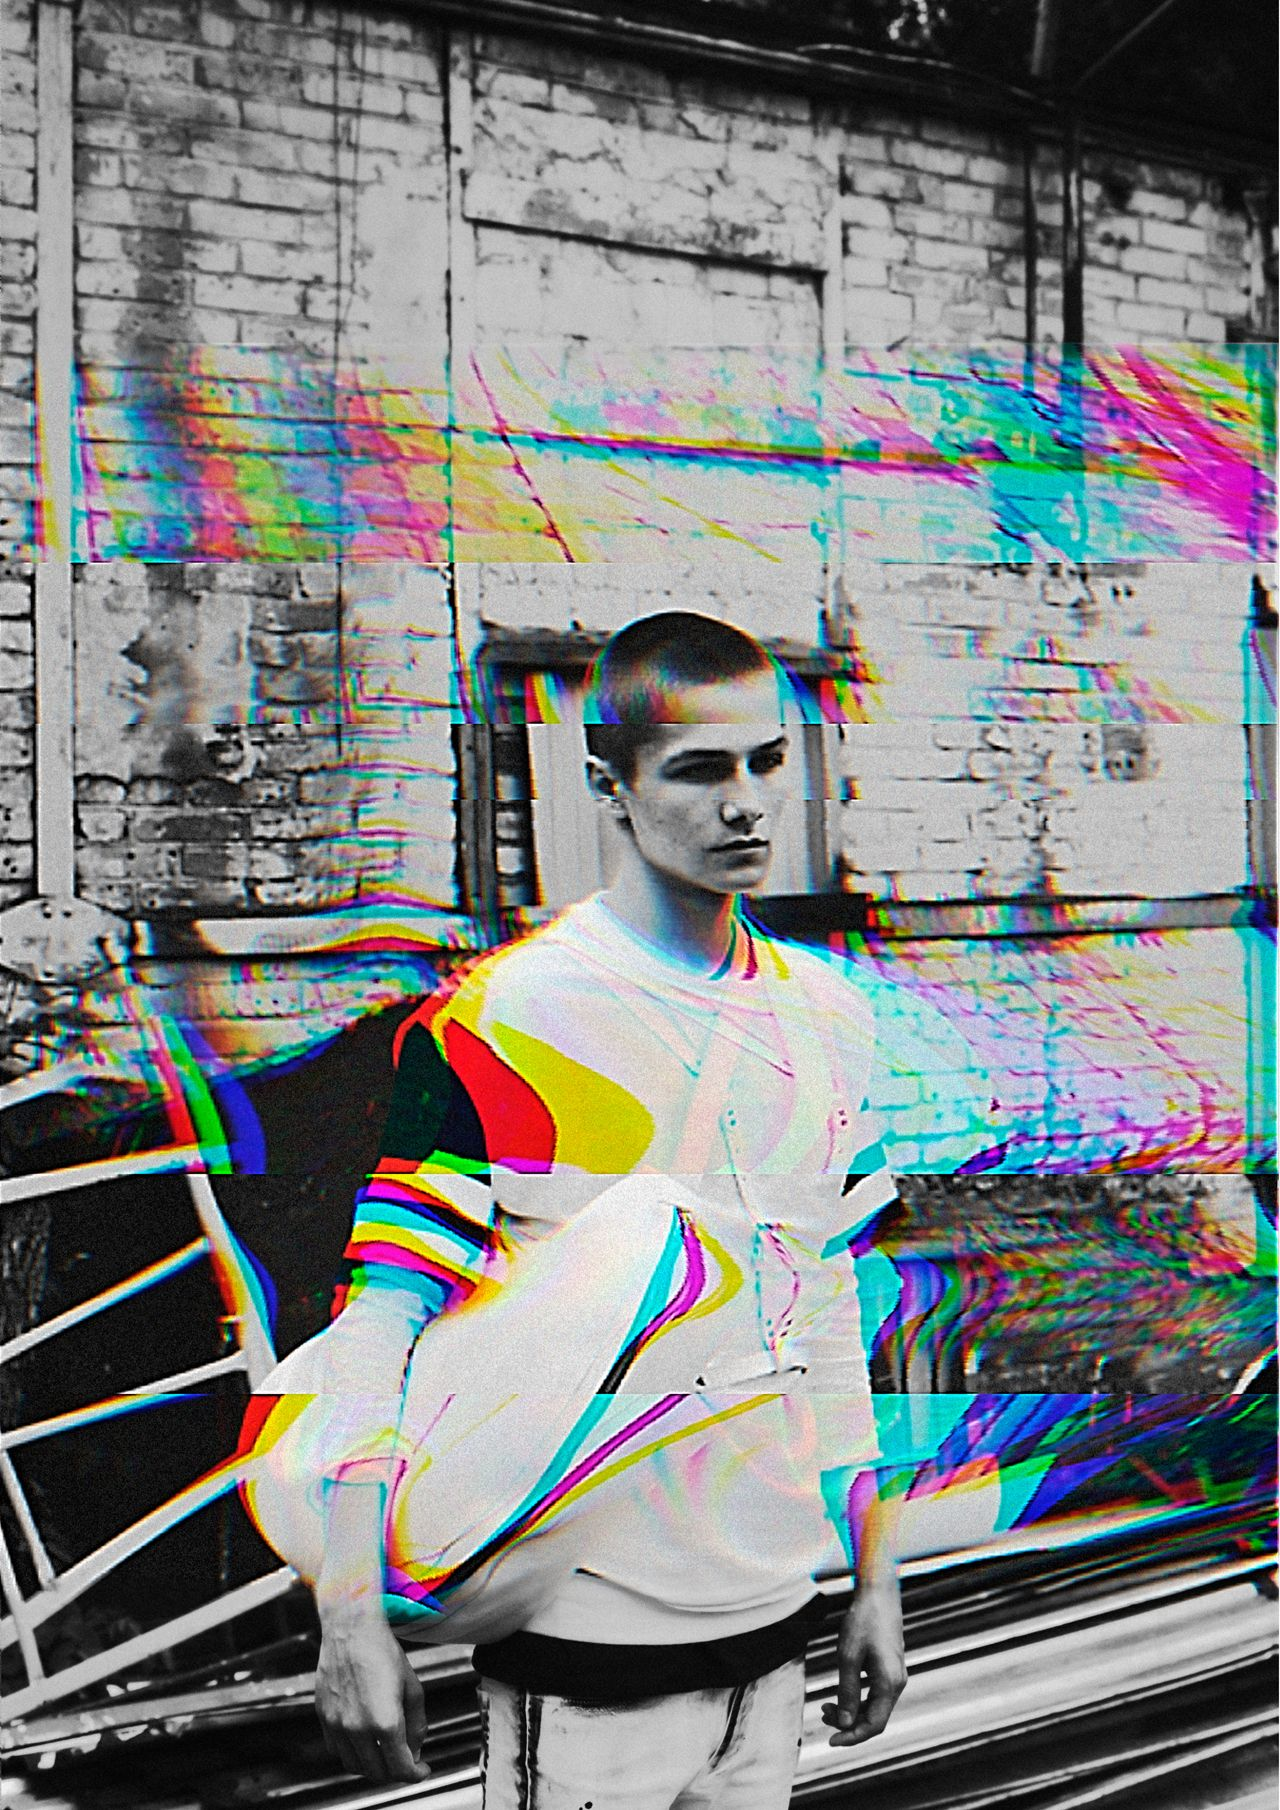 Trendy Graphic Design: Bundenko Photo & Collage Artist #glitch